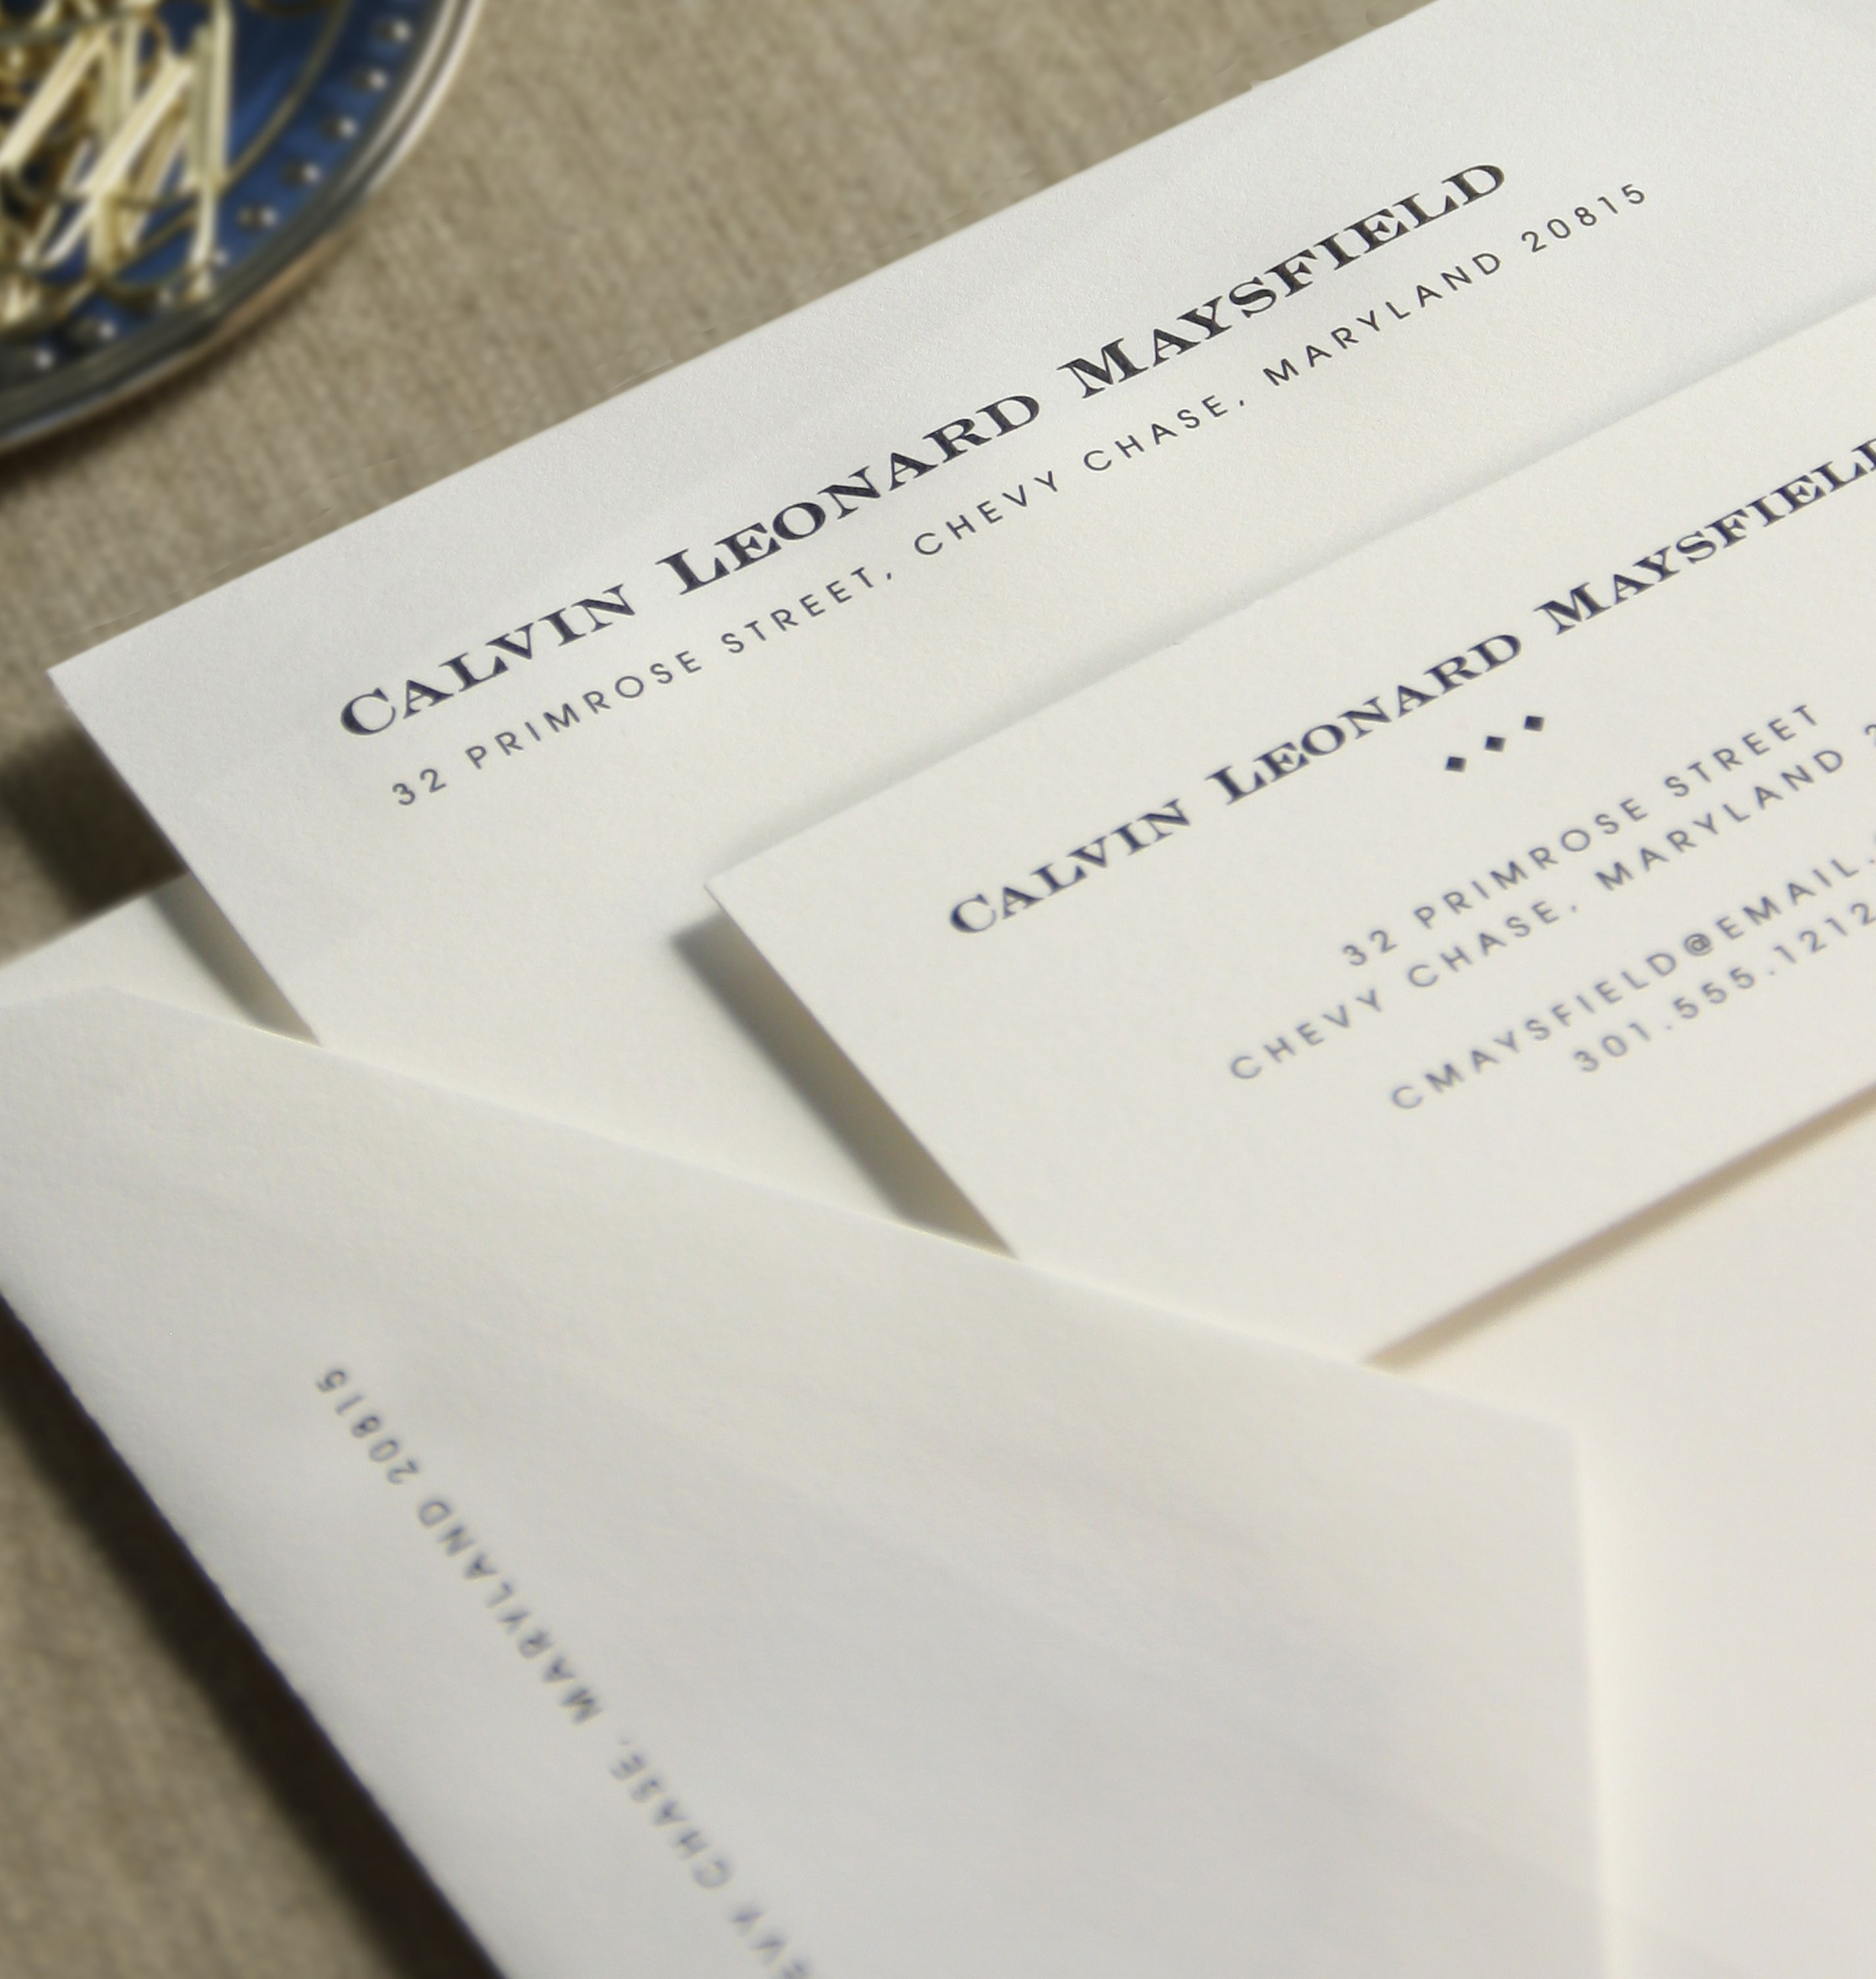 Executive College Stationery Note Cards: The Executive Sheet Is The Basic Stationery Used By Most